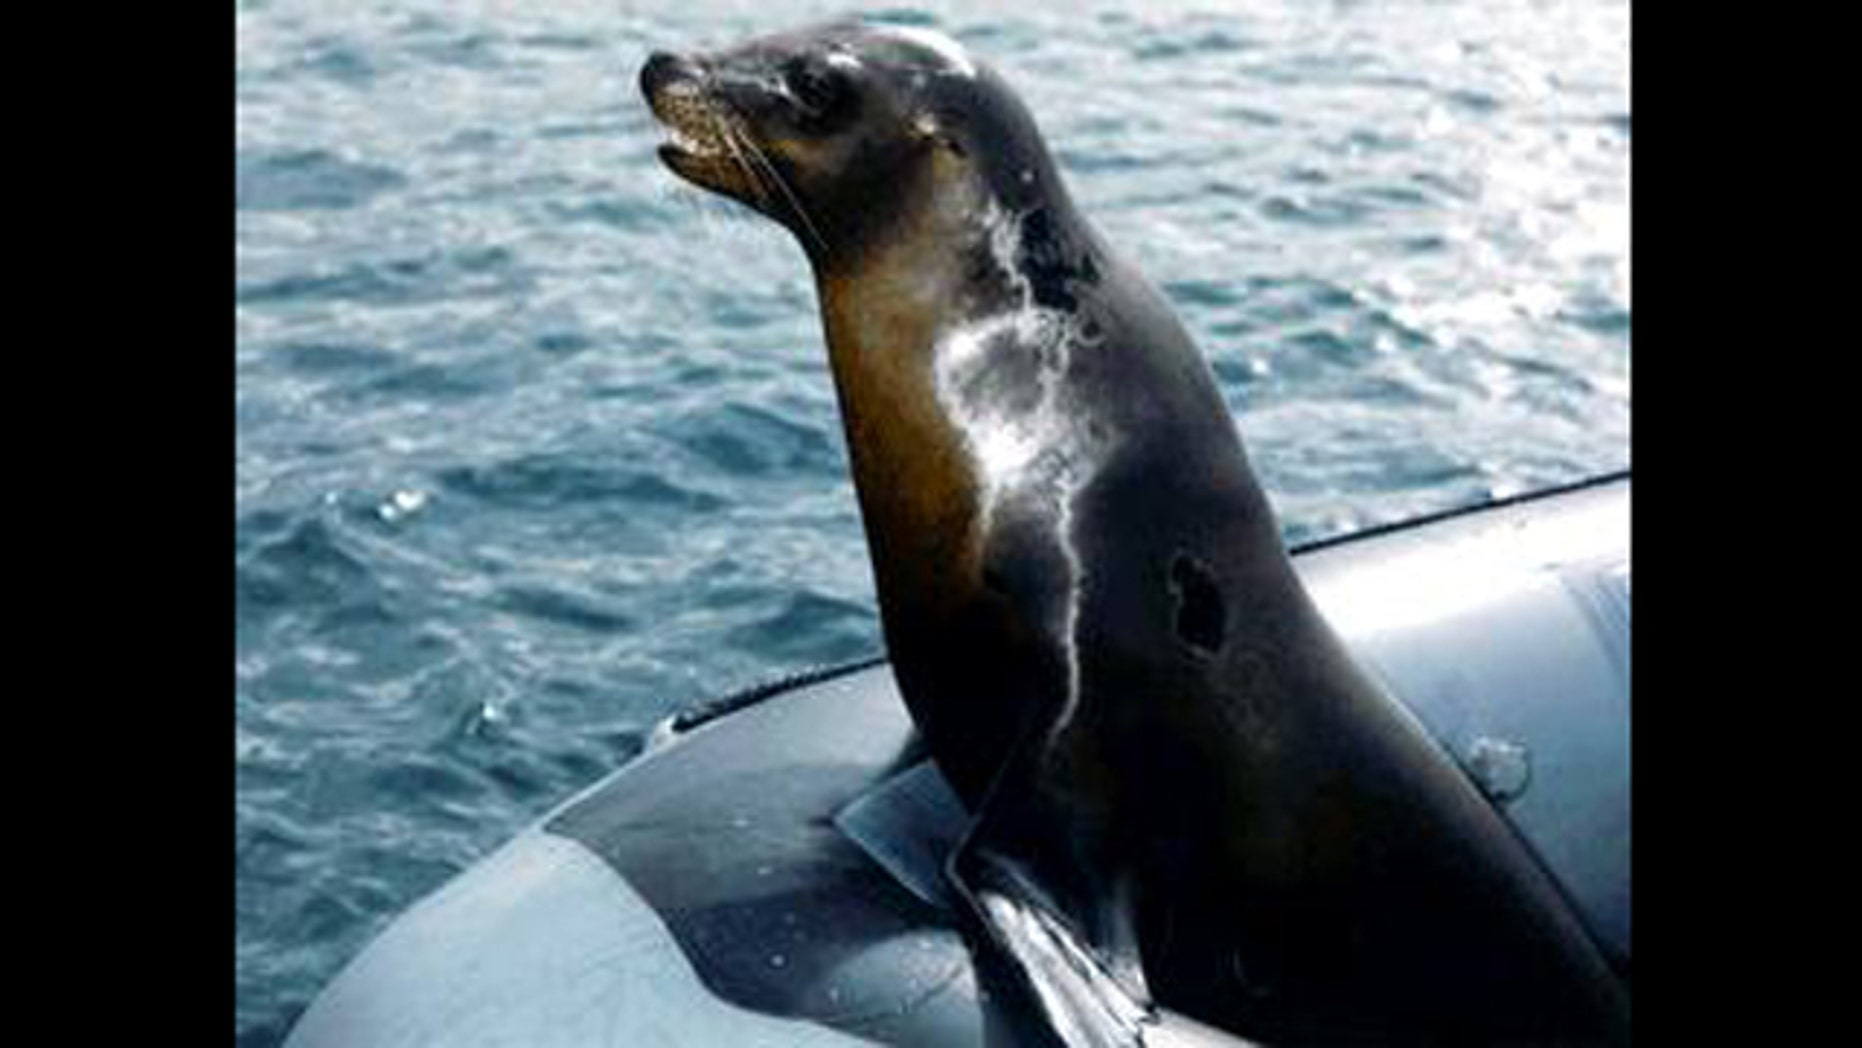 A sea lion rides in a boat, perhaps en route to a mine-detection mission.